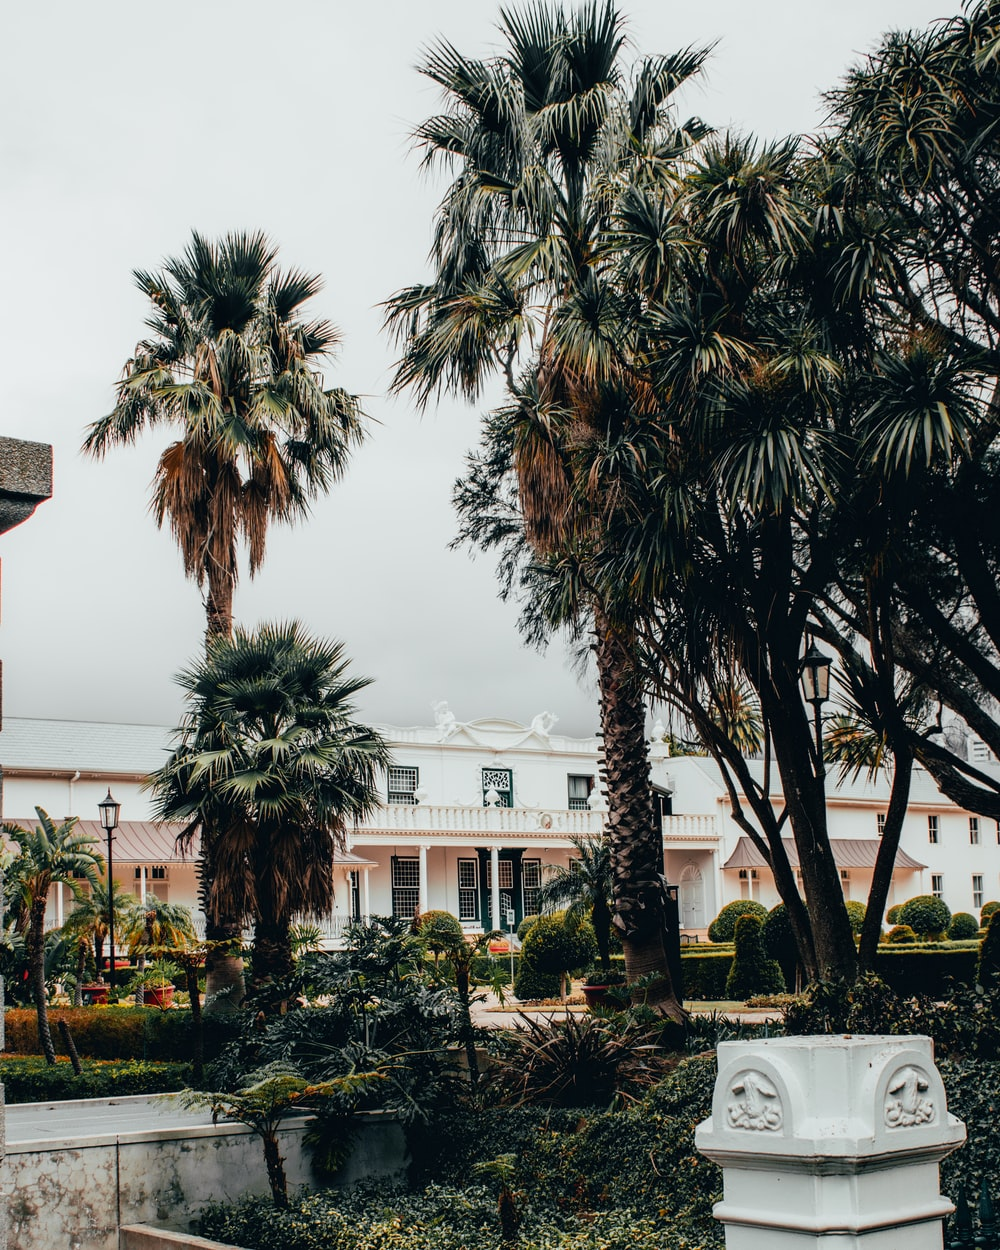 green palm trees near white concrete building during daytime